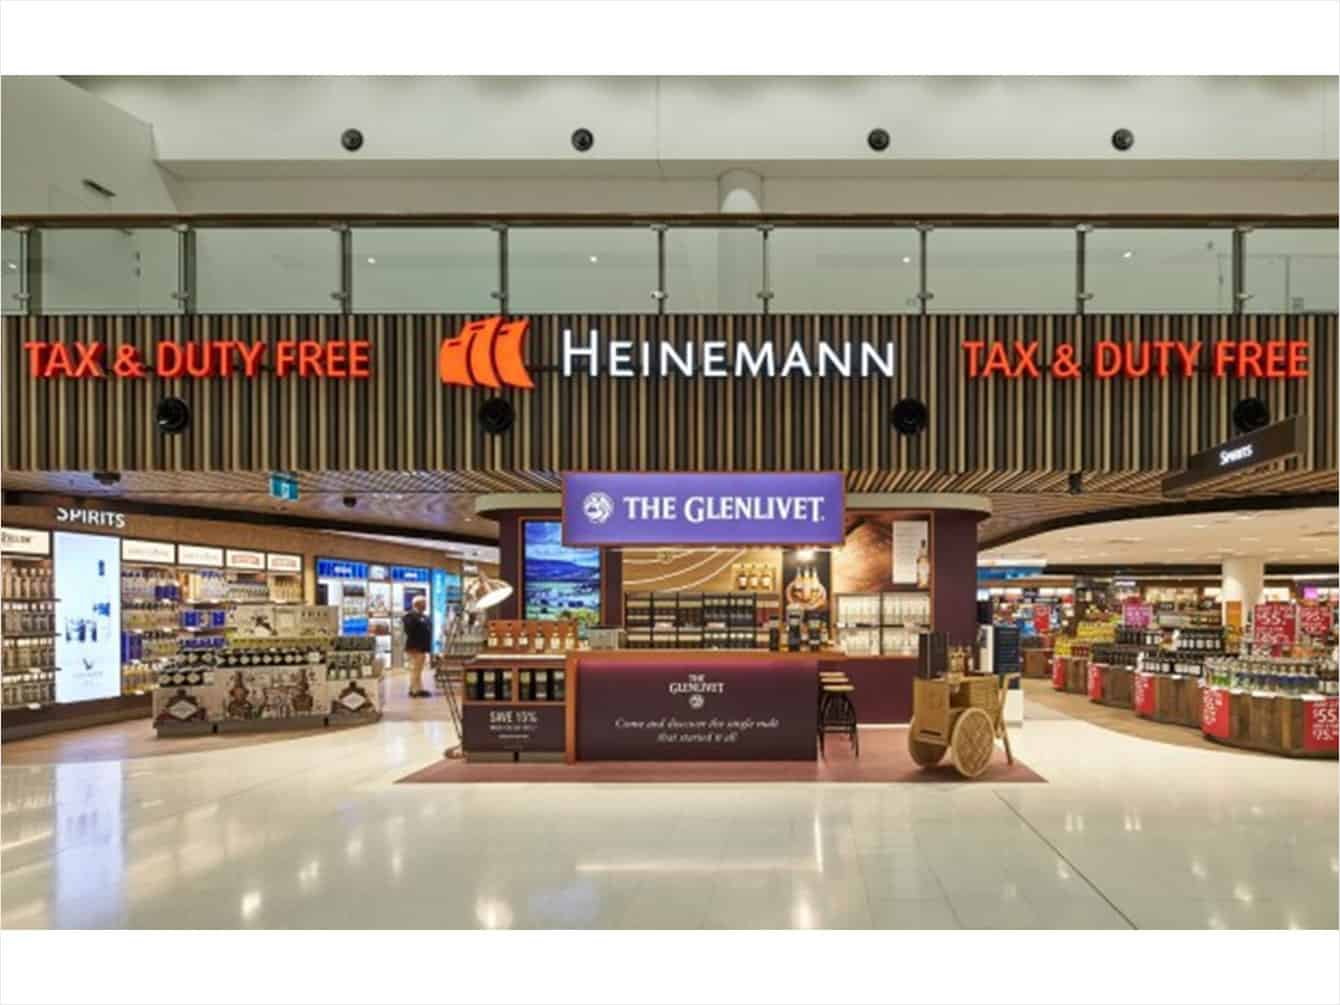 Sydney Airport Shops Duty Free Giant Opens Krgs Doors At Sydney Airport Krgsdoors